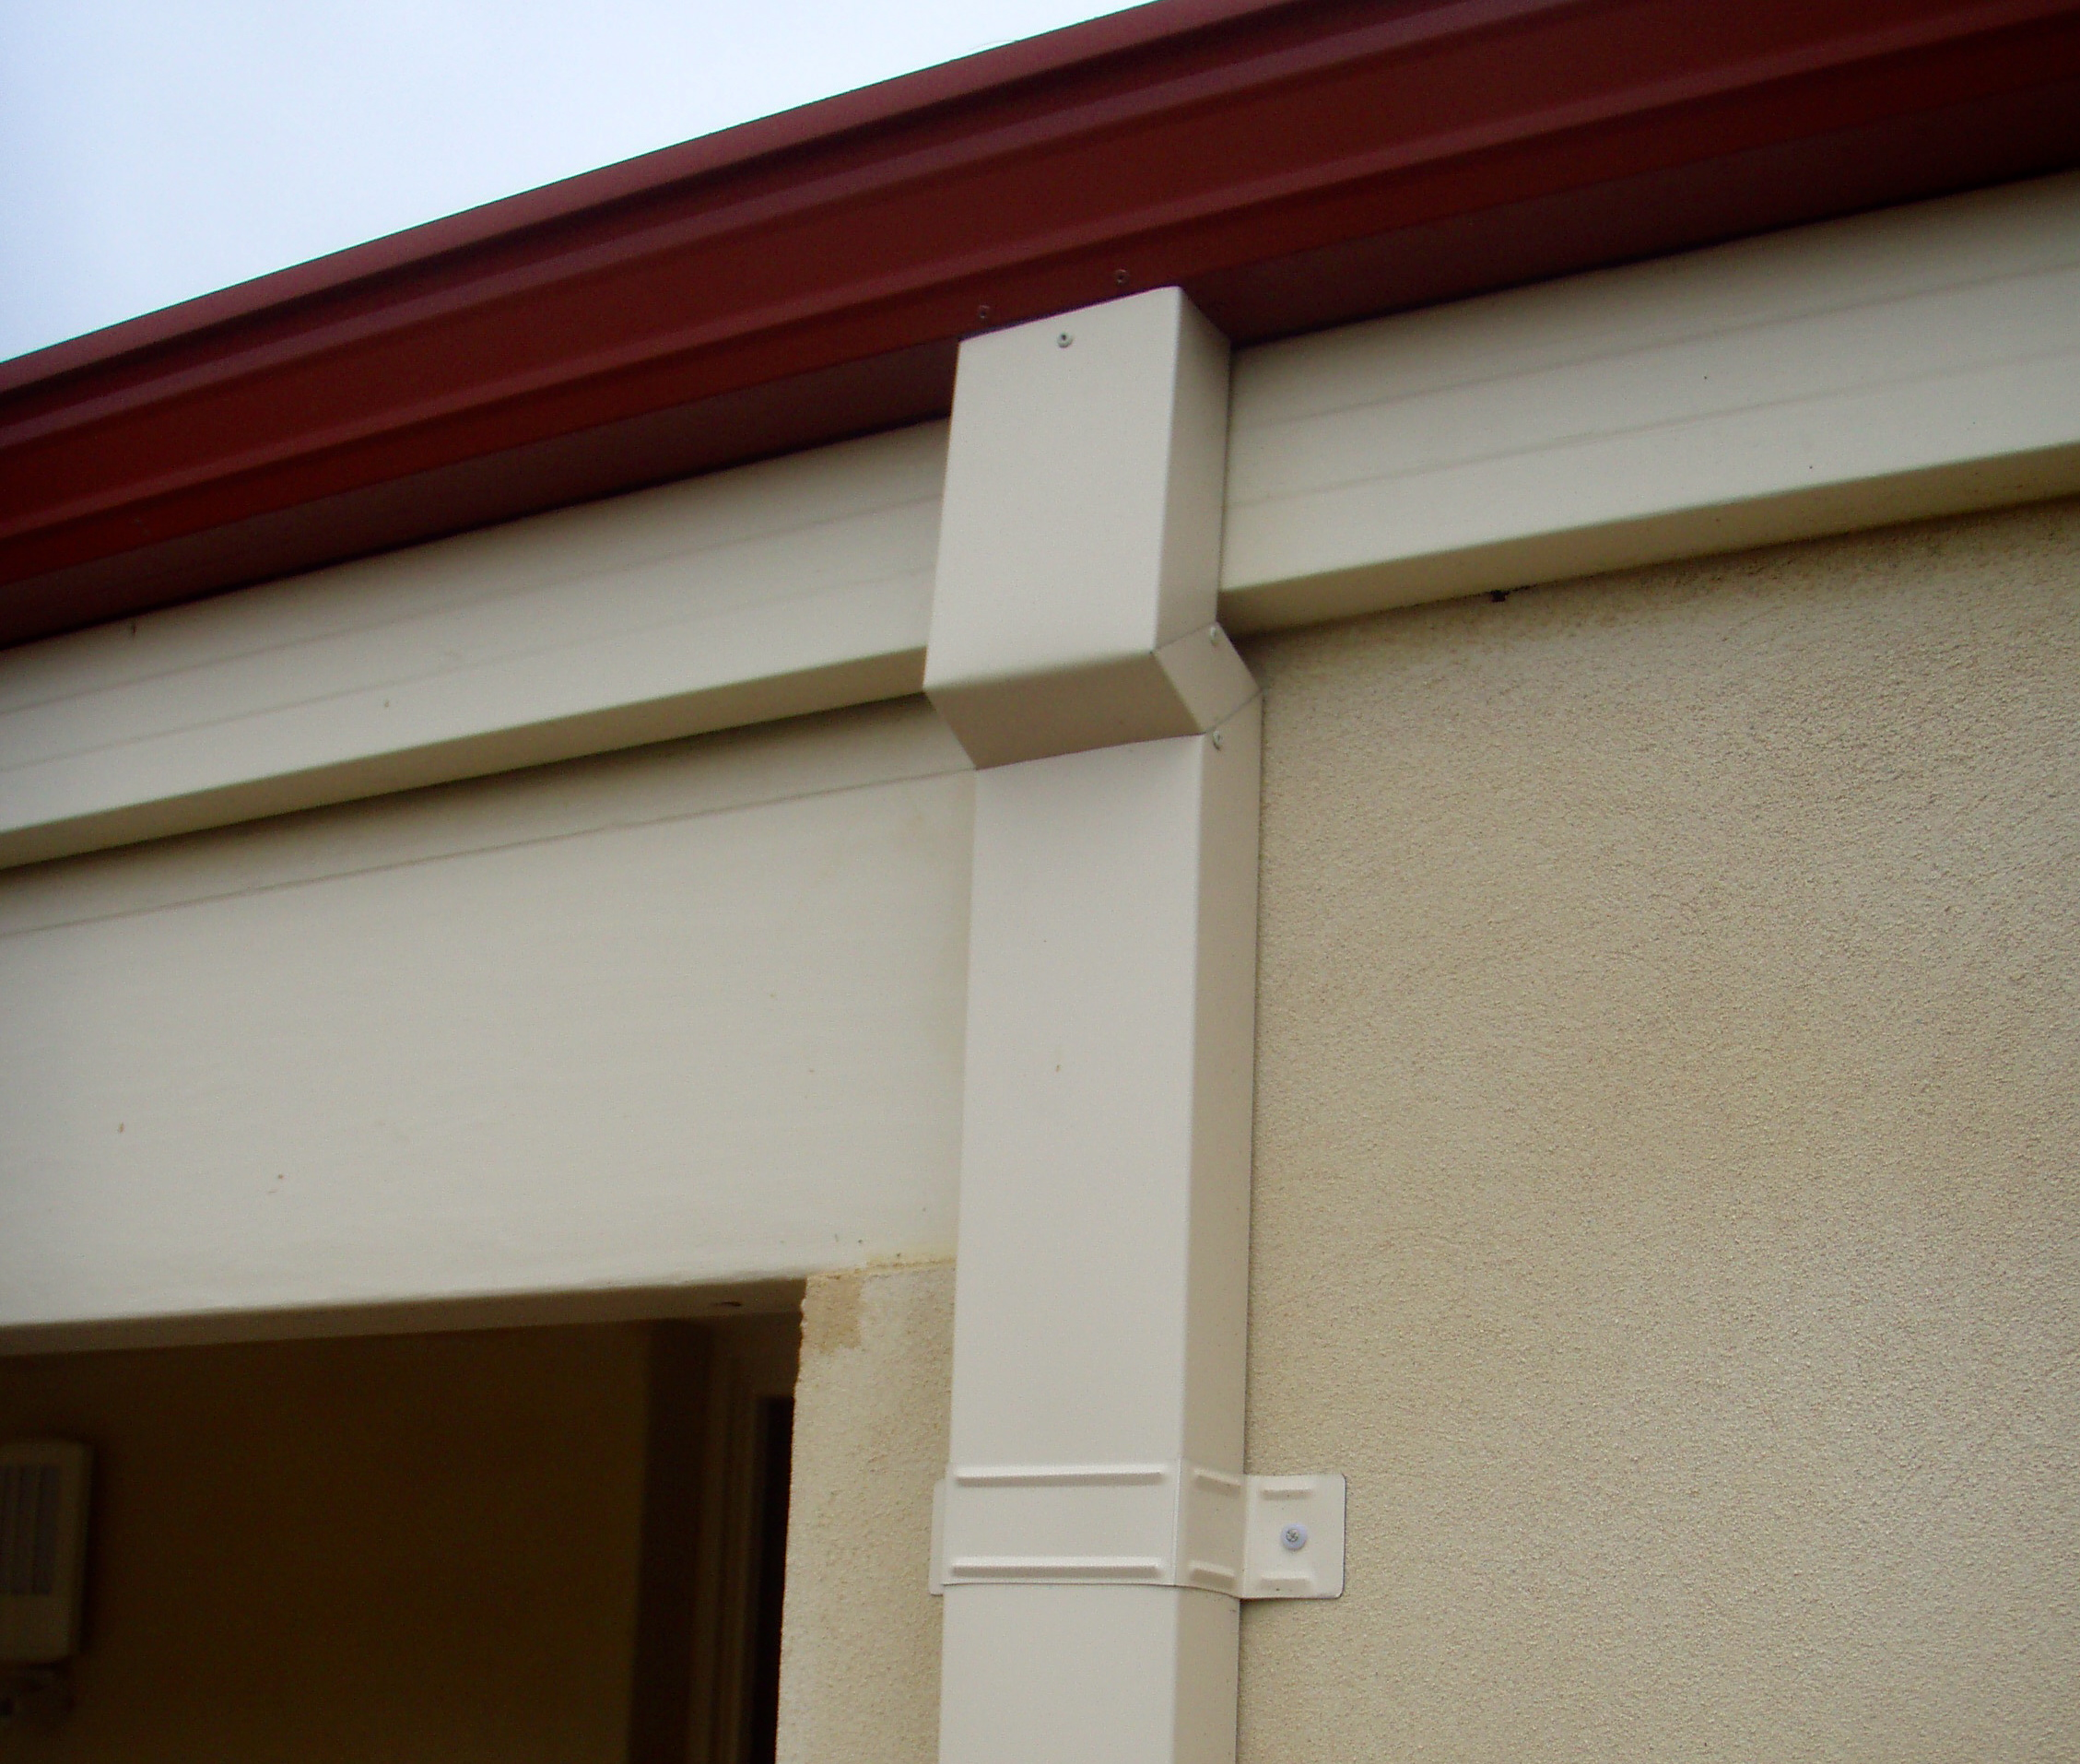 Rectangular downpipes